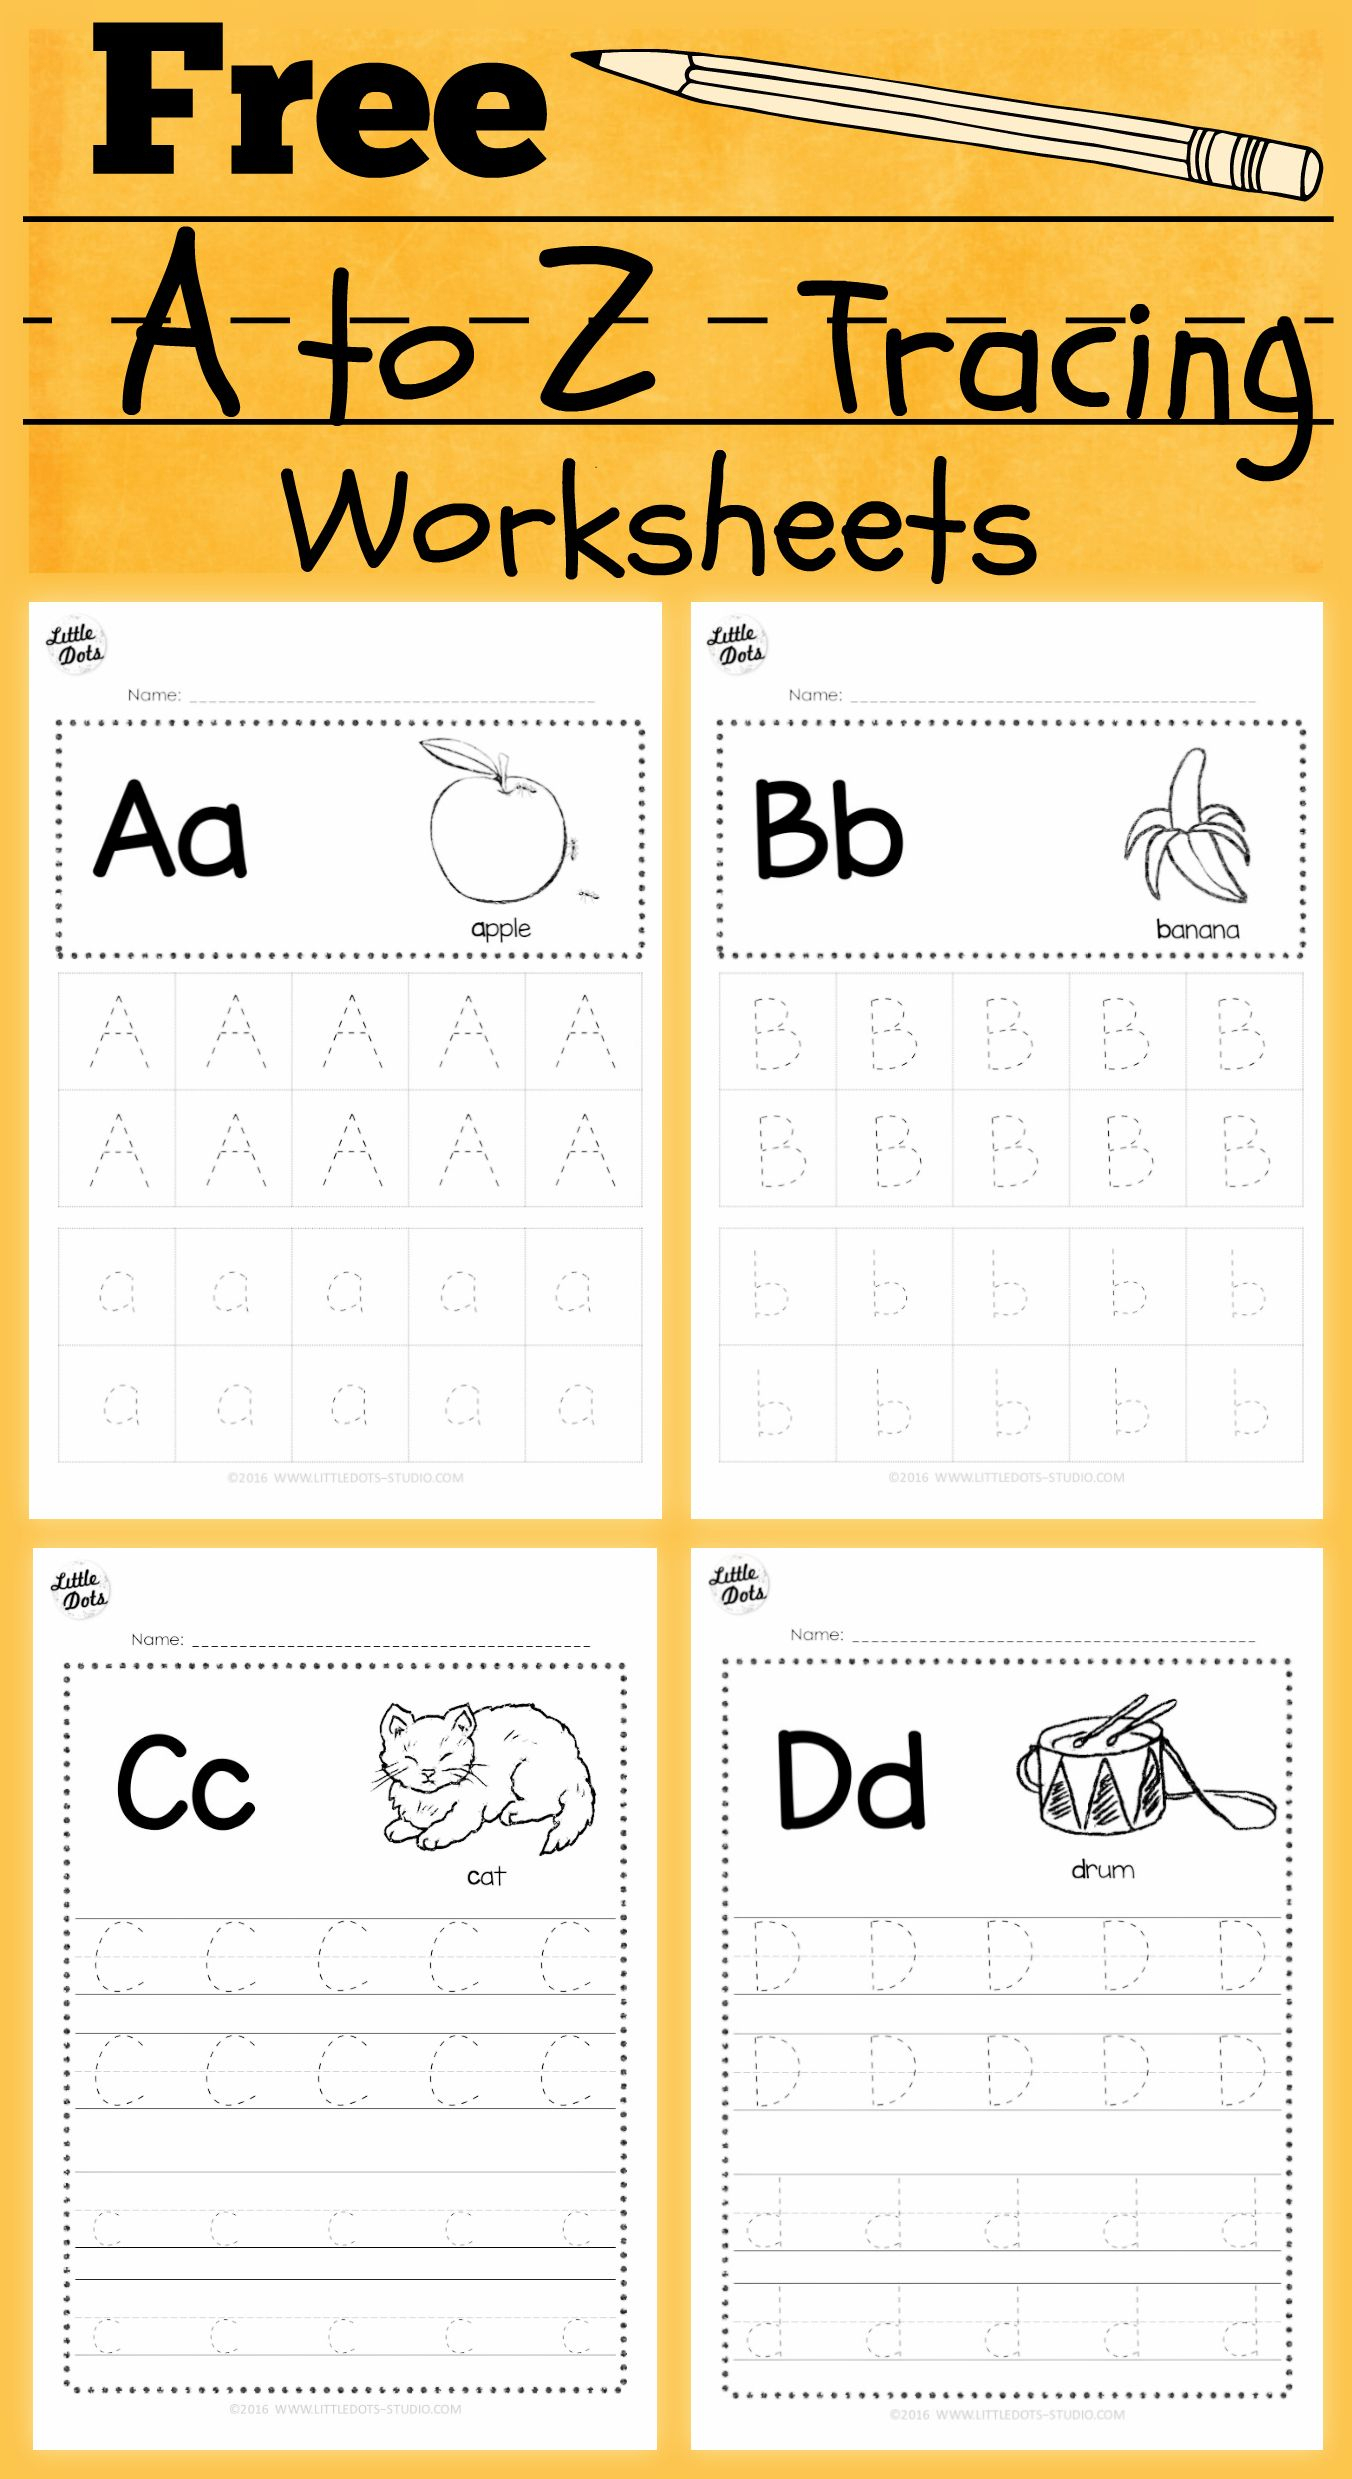 Download Free Alphabet Tracing Worksheets For Letter A To Z pertaining to A-Z Alphabet Tracing